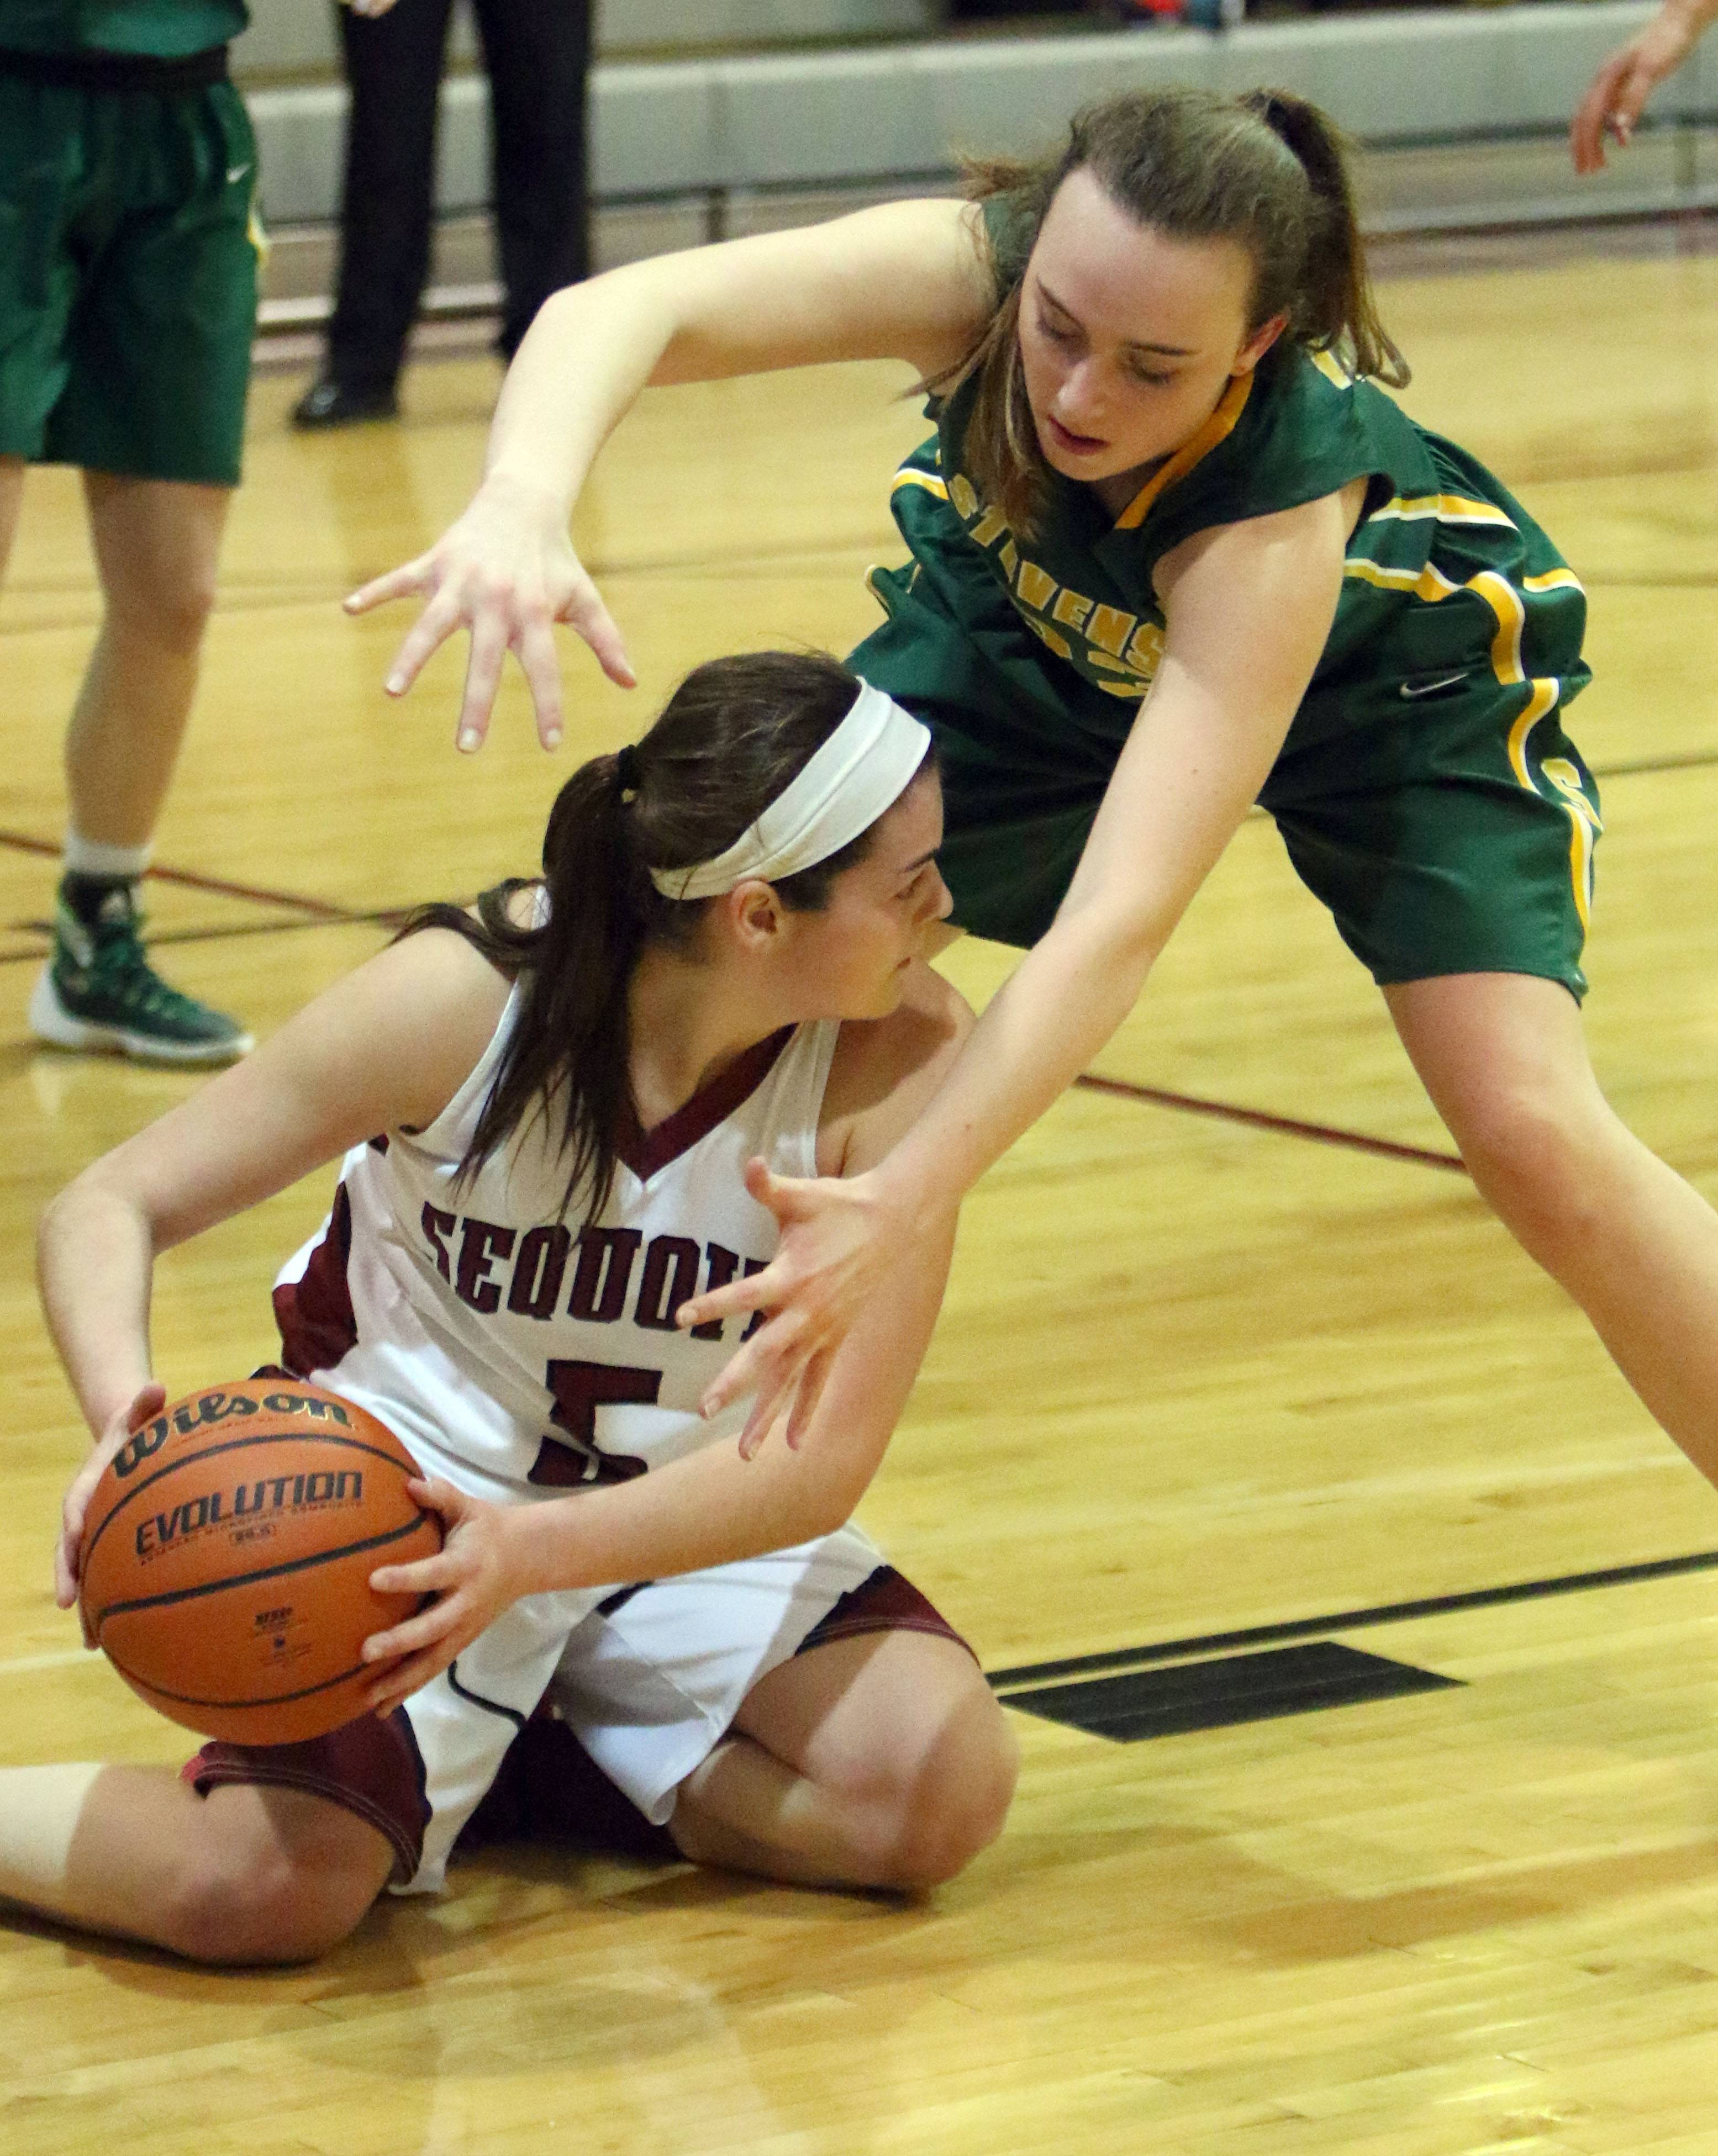 Antioch's Amy Reiser, left, and Stevenson's Klaire Steffens battle for a lose ball during the NSC title game Wednesday night at Antioch.